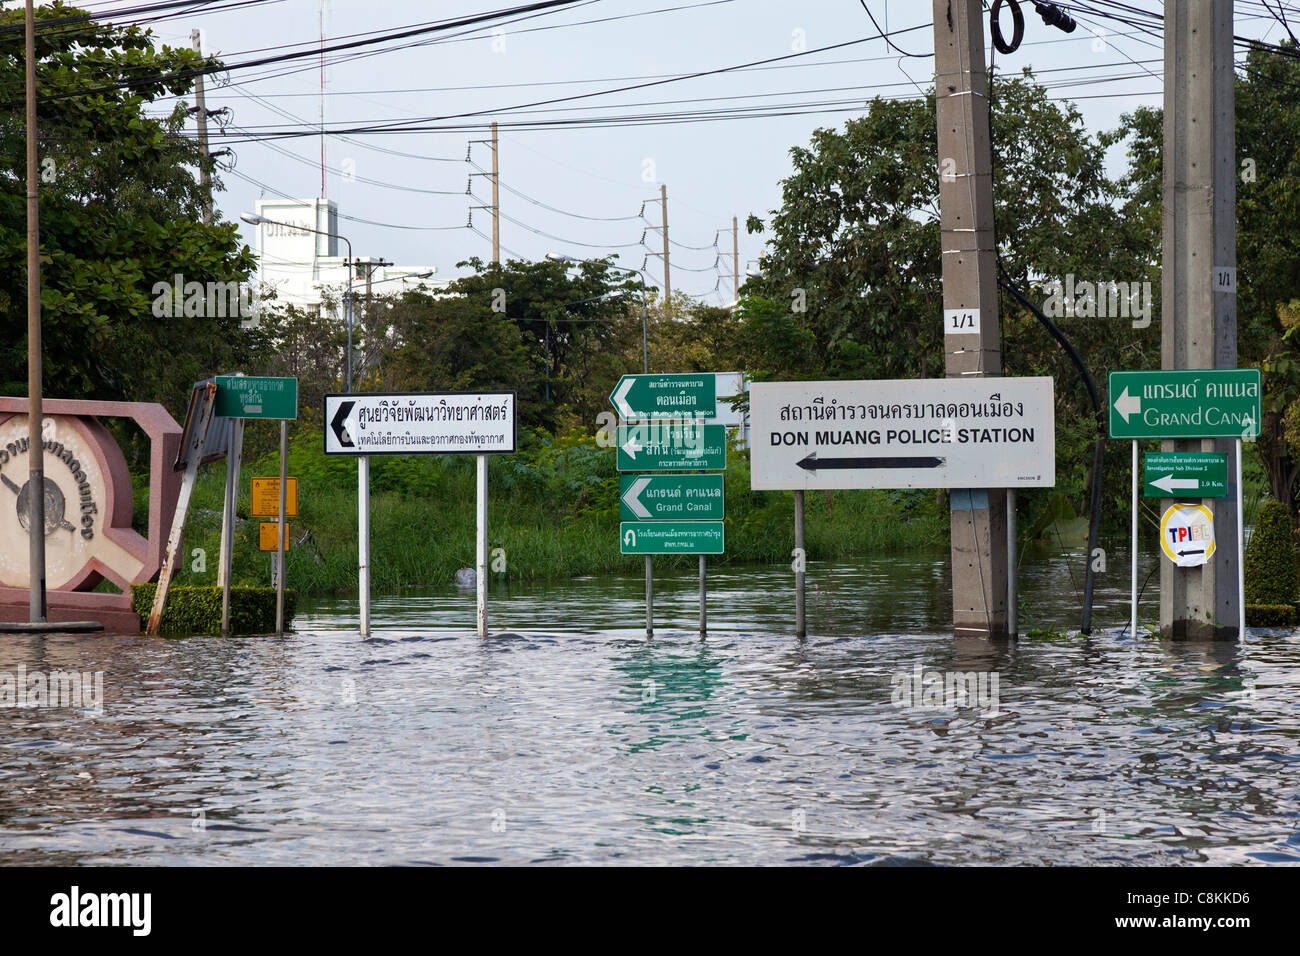 Road signs in flooded Bangkok street, Thailand - Stock Image